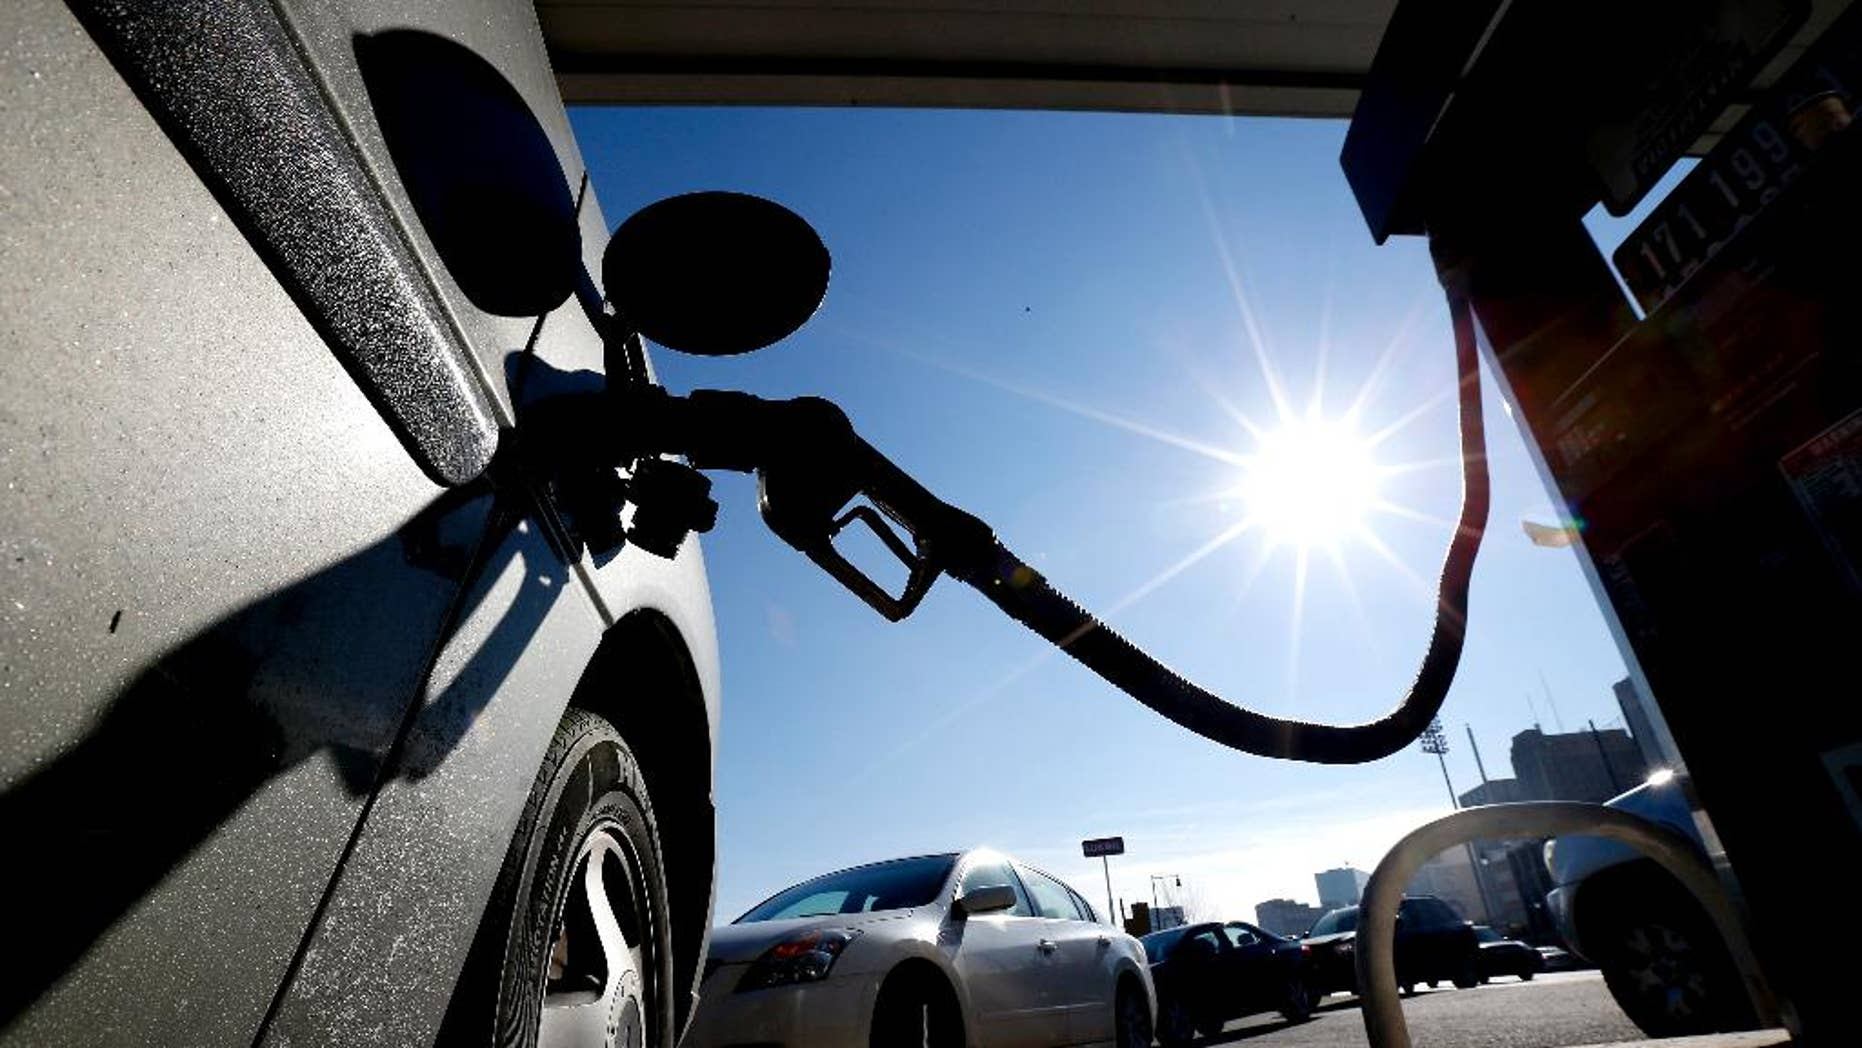 FILE - In this Friday, Jan. 23, 2015, file photo, vehicles form a line behind a motorist gassing up at a gas station in Newark, N.J. The Commerce Department releases its February report on consumer spending, which accounts for 70 percent of economic activity, on Monday, March 30, 2015. (AP Photo/Julio Cortez, File)